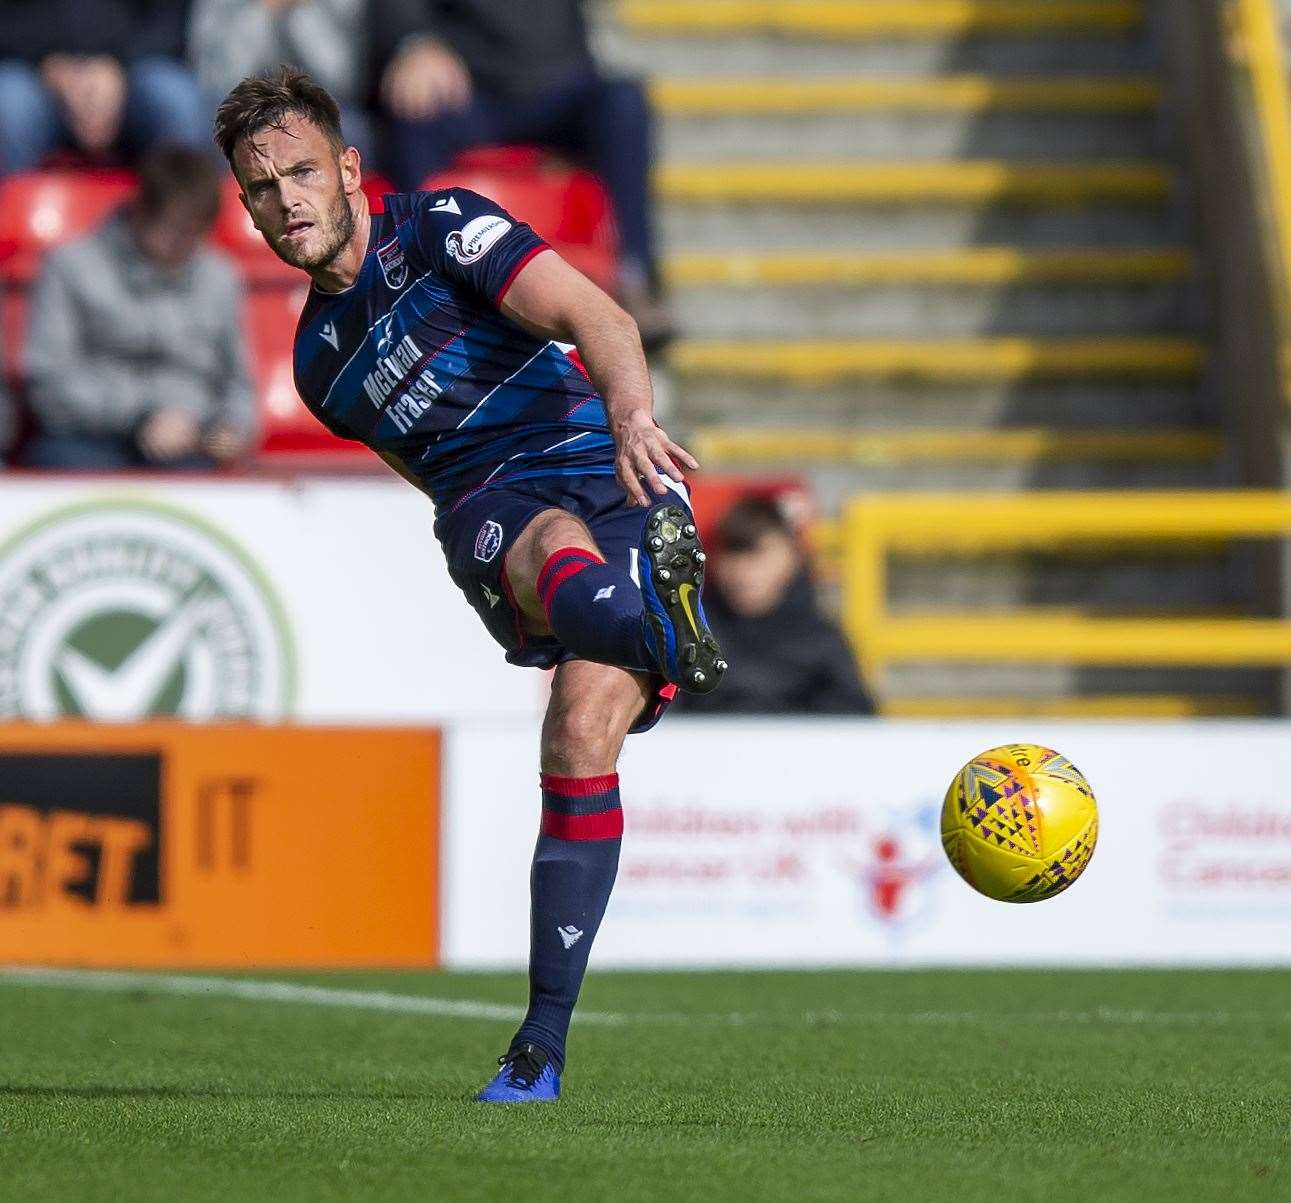 Ross County defender believes his old side St Johnstone will still pose a threat, despite sitting at the bottom of the table. Picture: Ken Macpherson